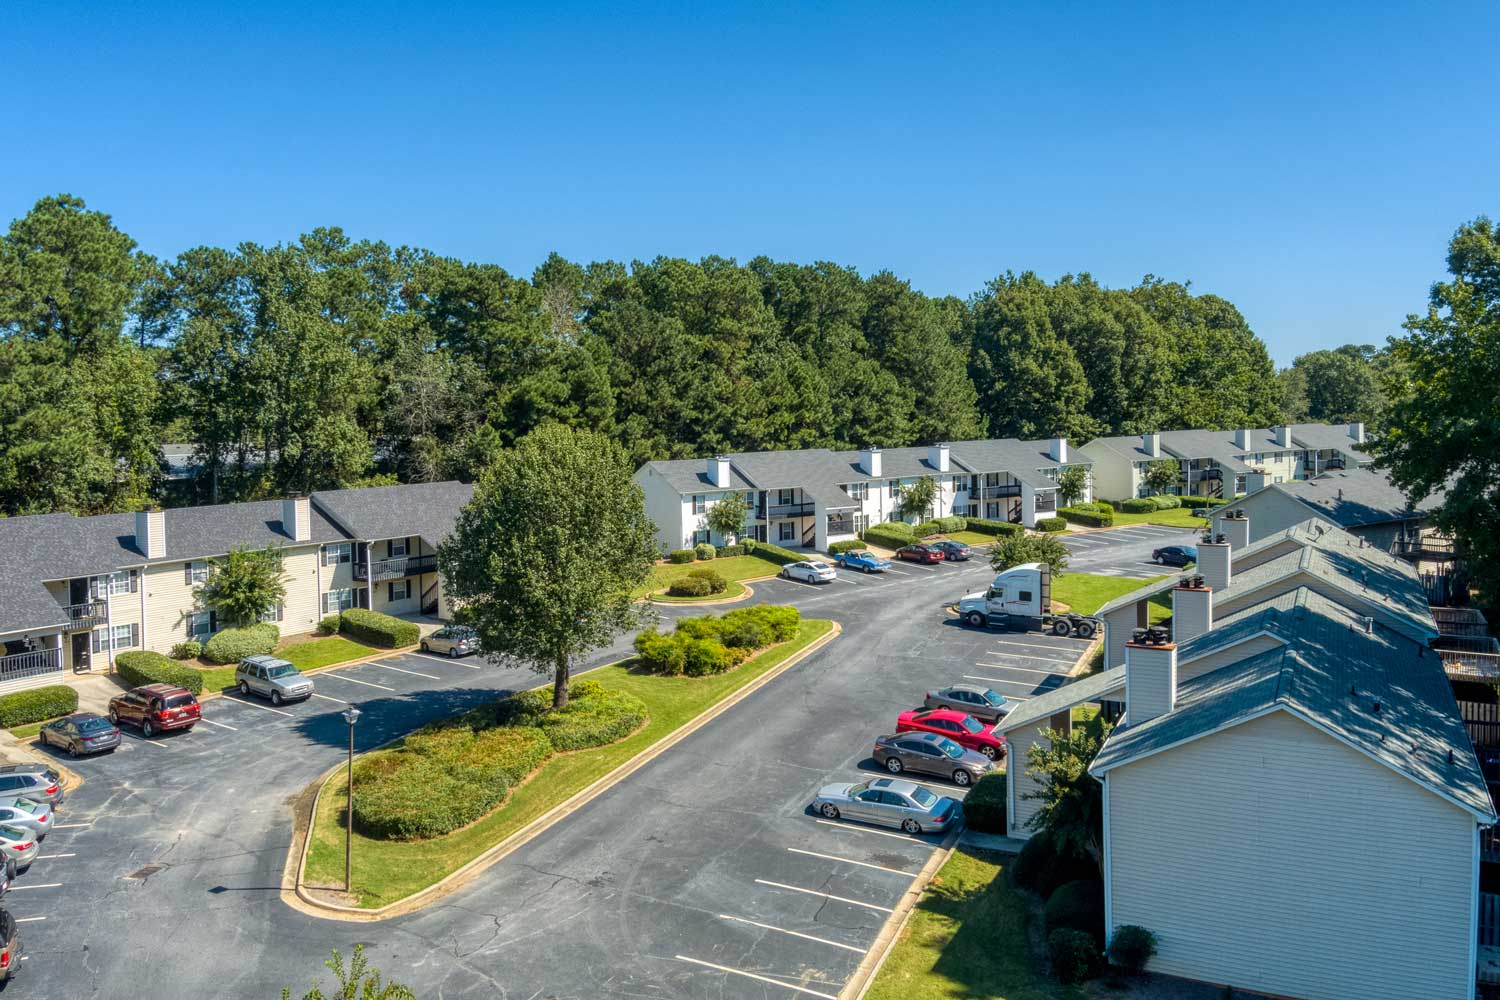 Open Parking at Tall Oaks Apartments and Villas in Conyers, GA